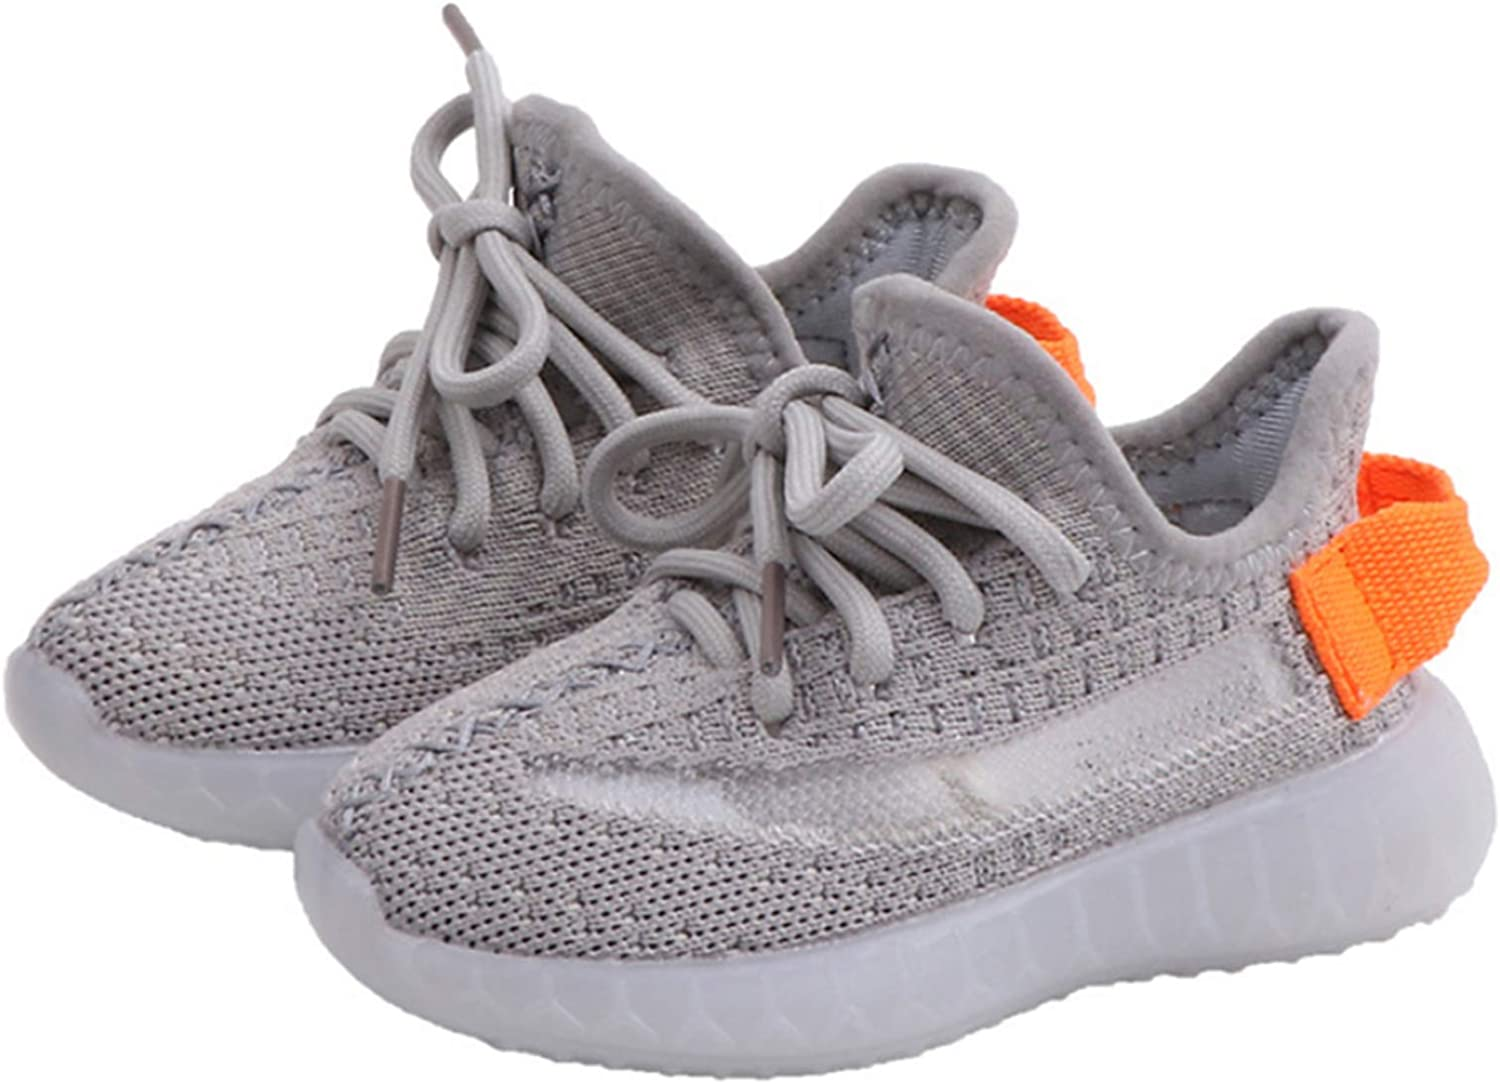 Kids Boys Girls Classic Soft Athletic Sneakers Child Casual Running Sports Shoes